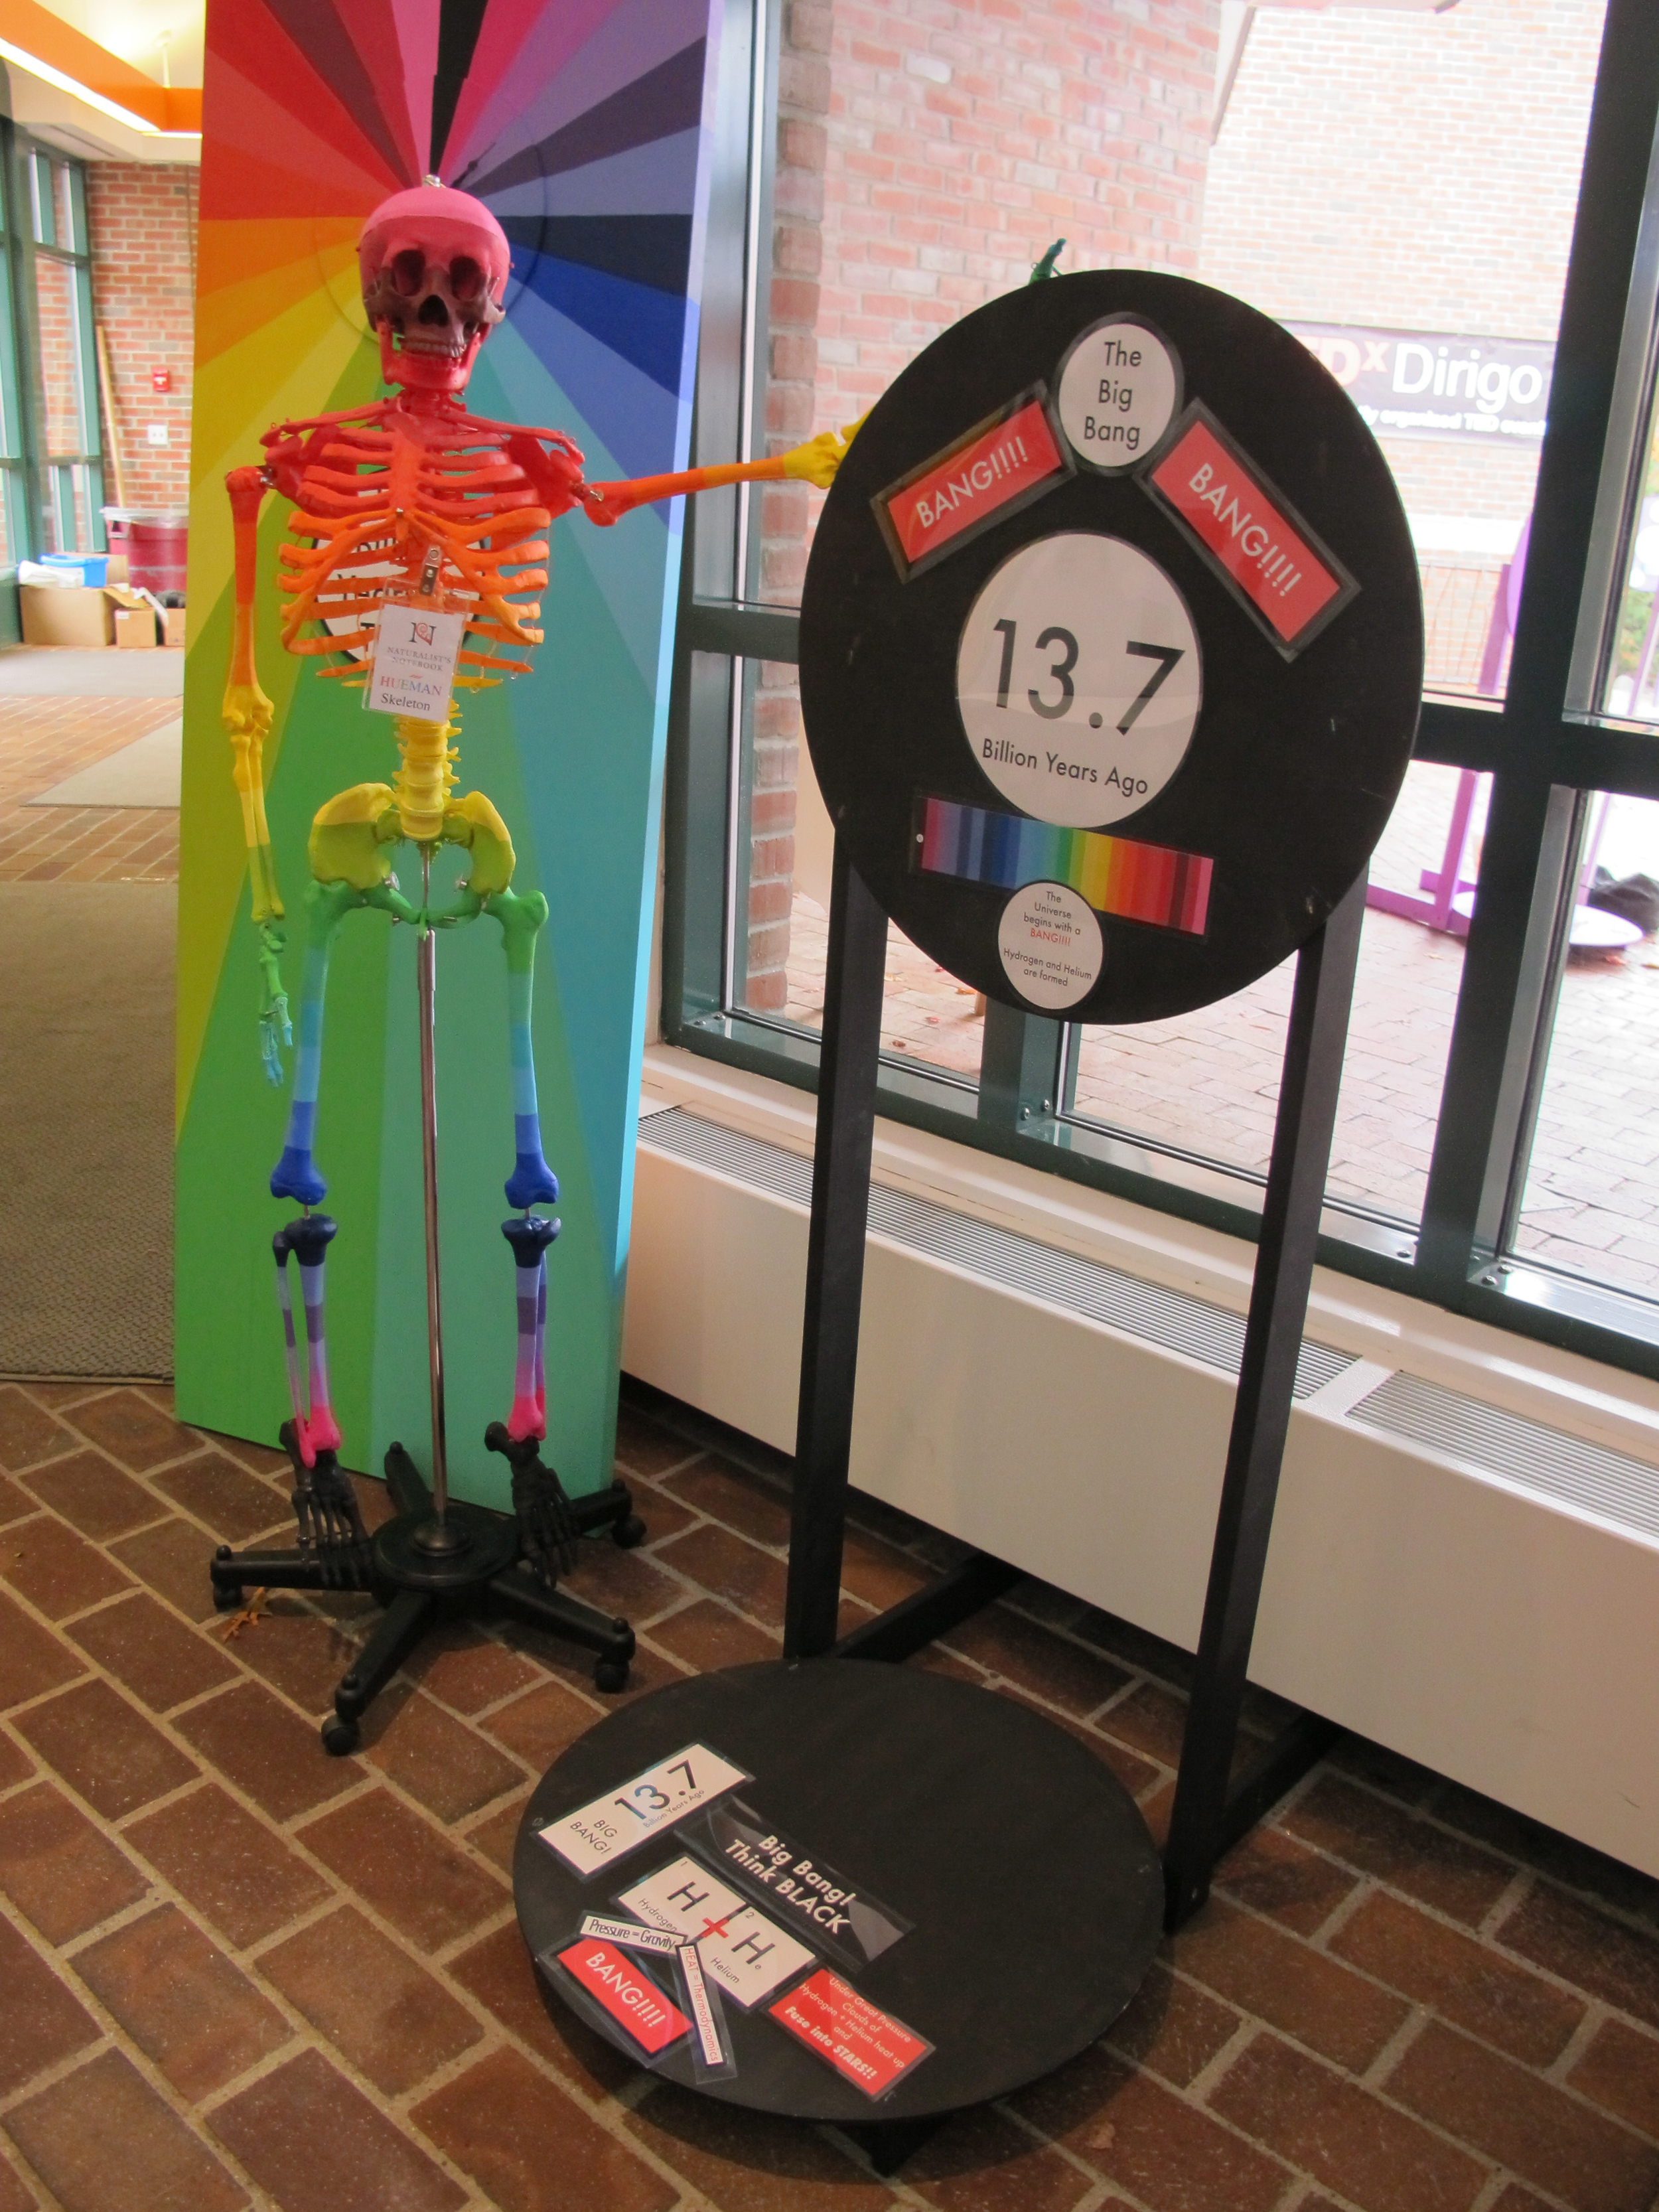 The HUEMAN skeleton looked splendid inside the art center, hanging out with the Big Bang.